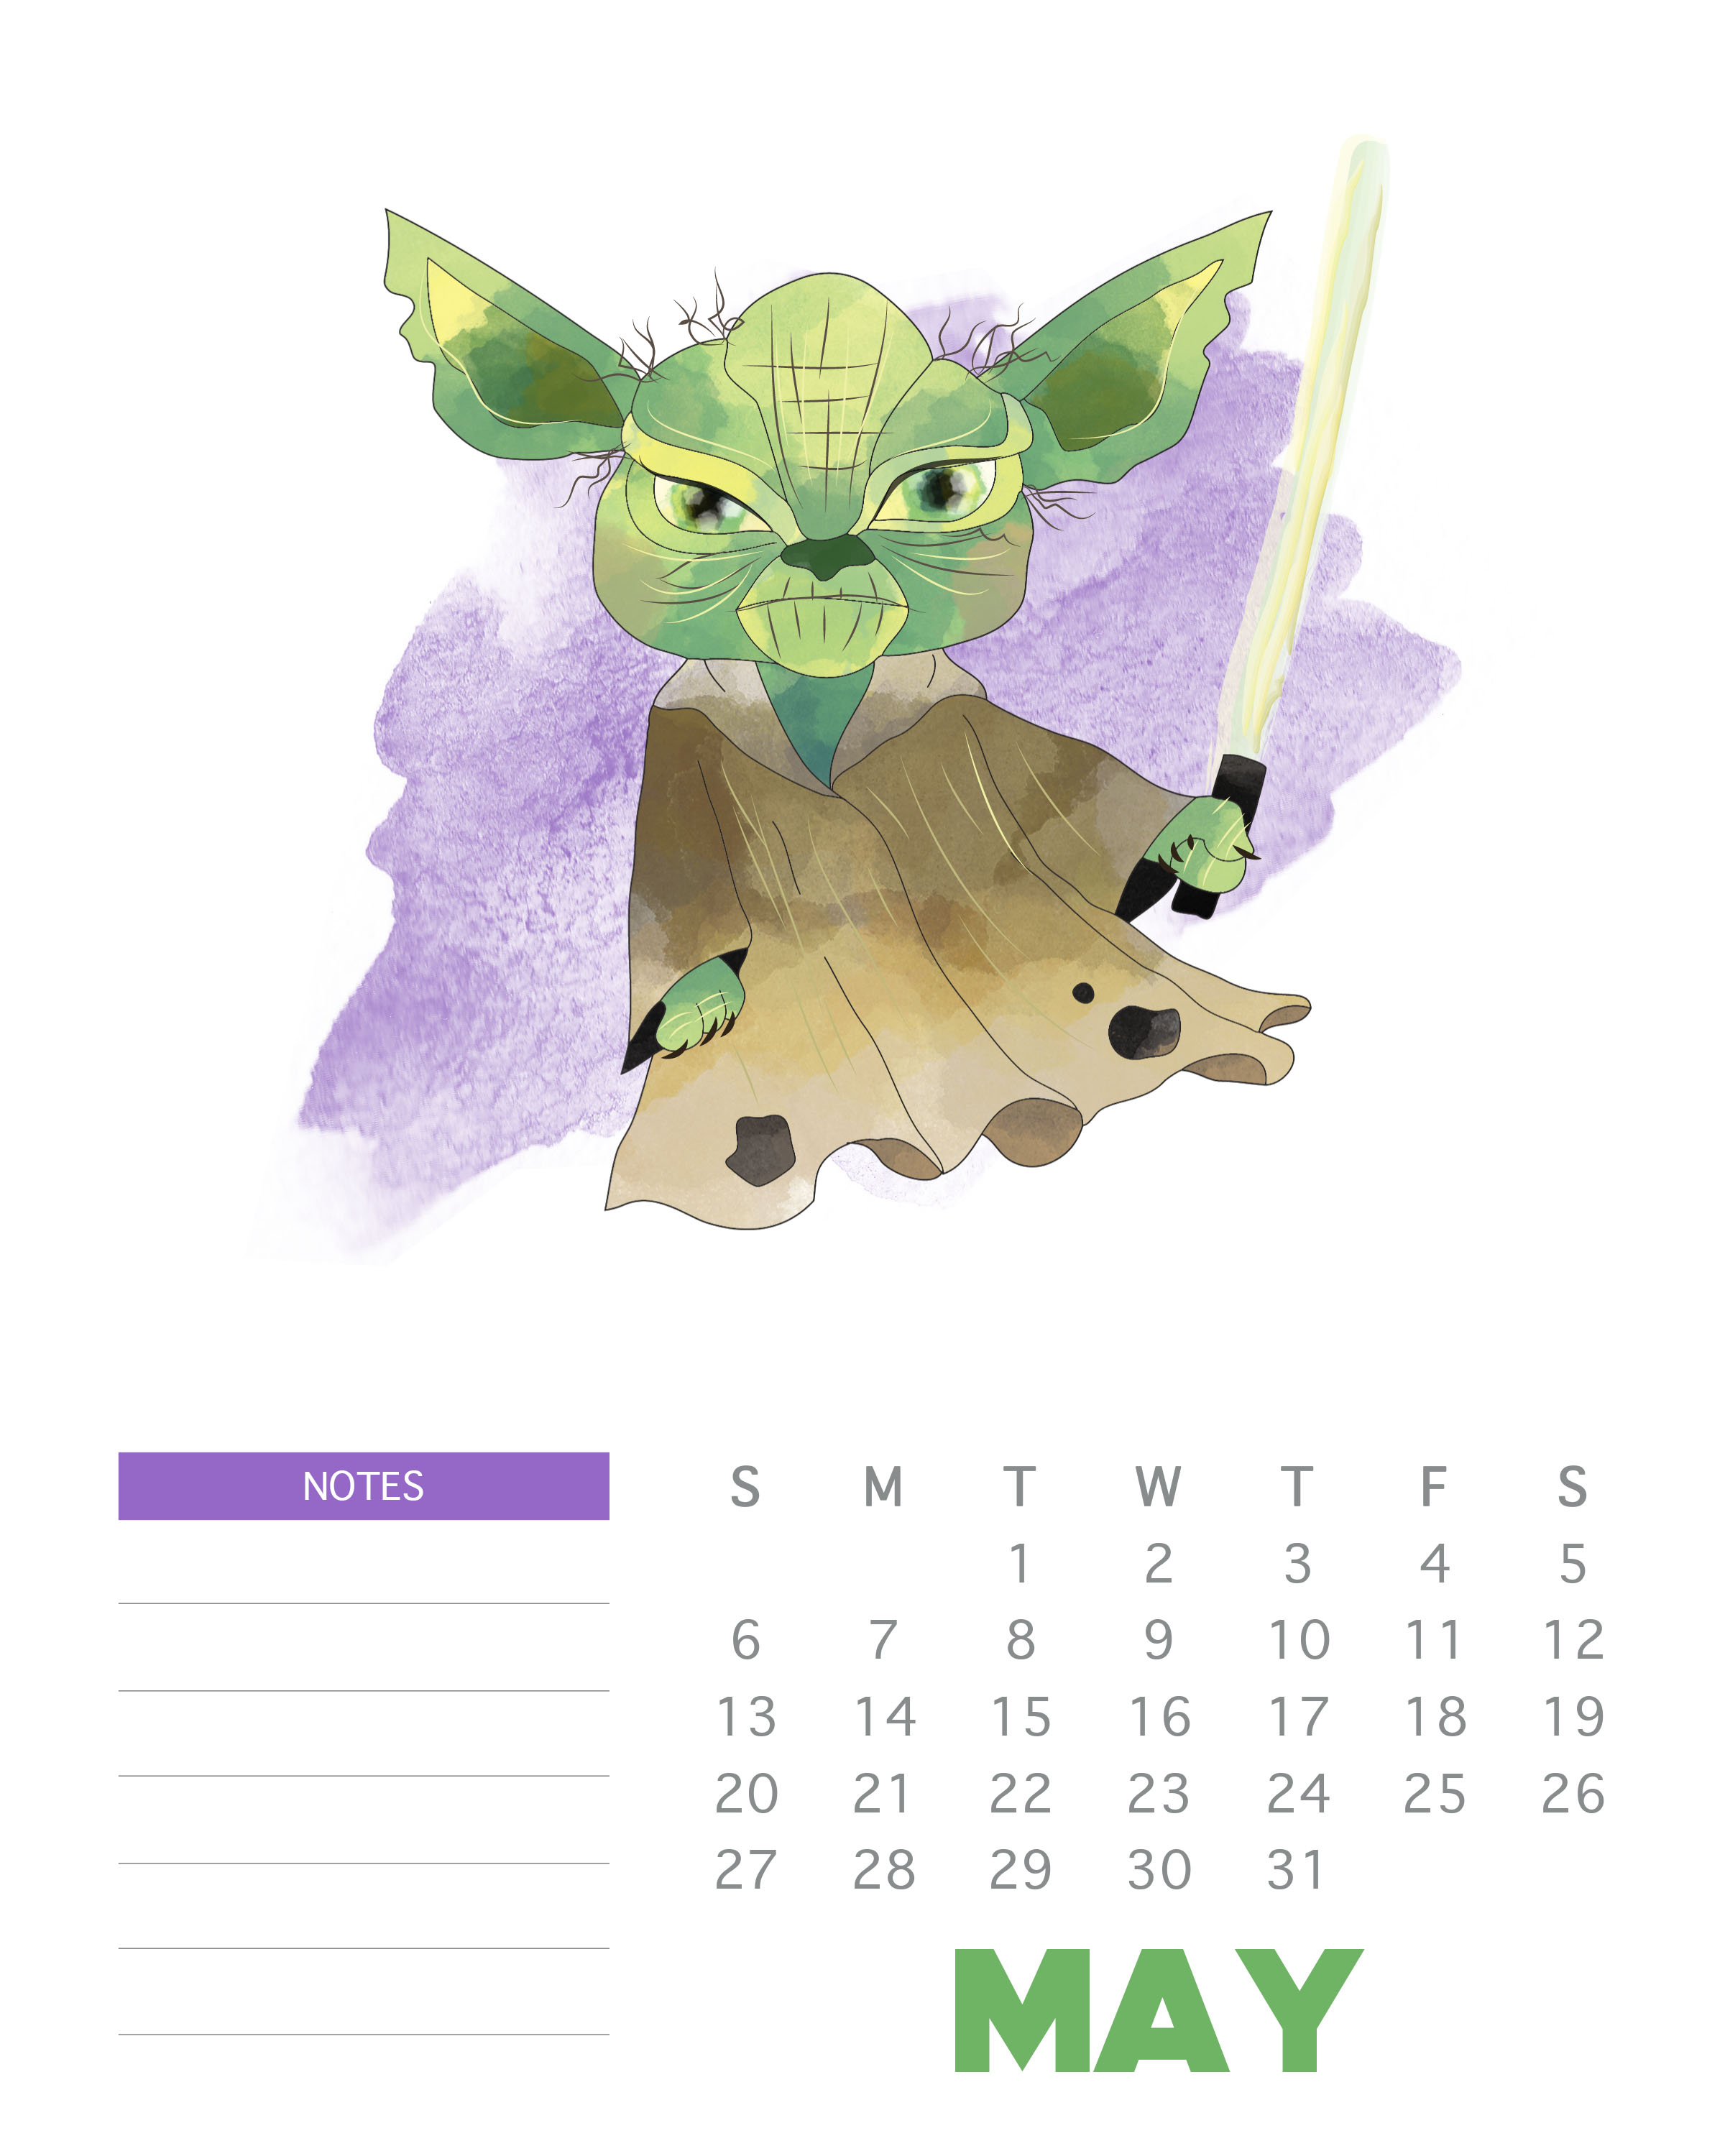 May 2018 Star Wars Calendar Template